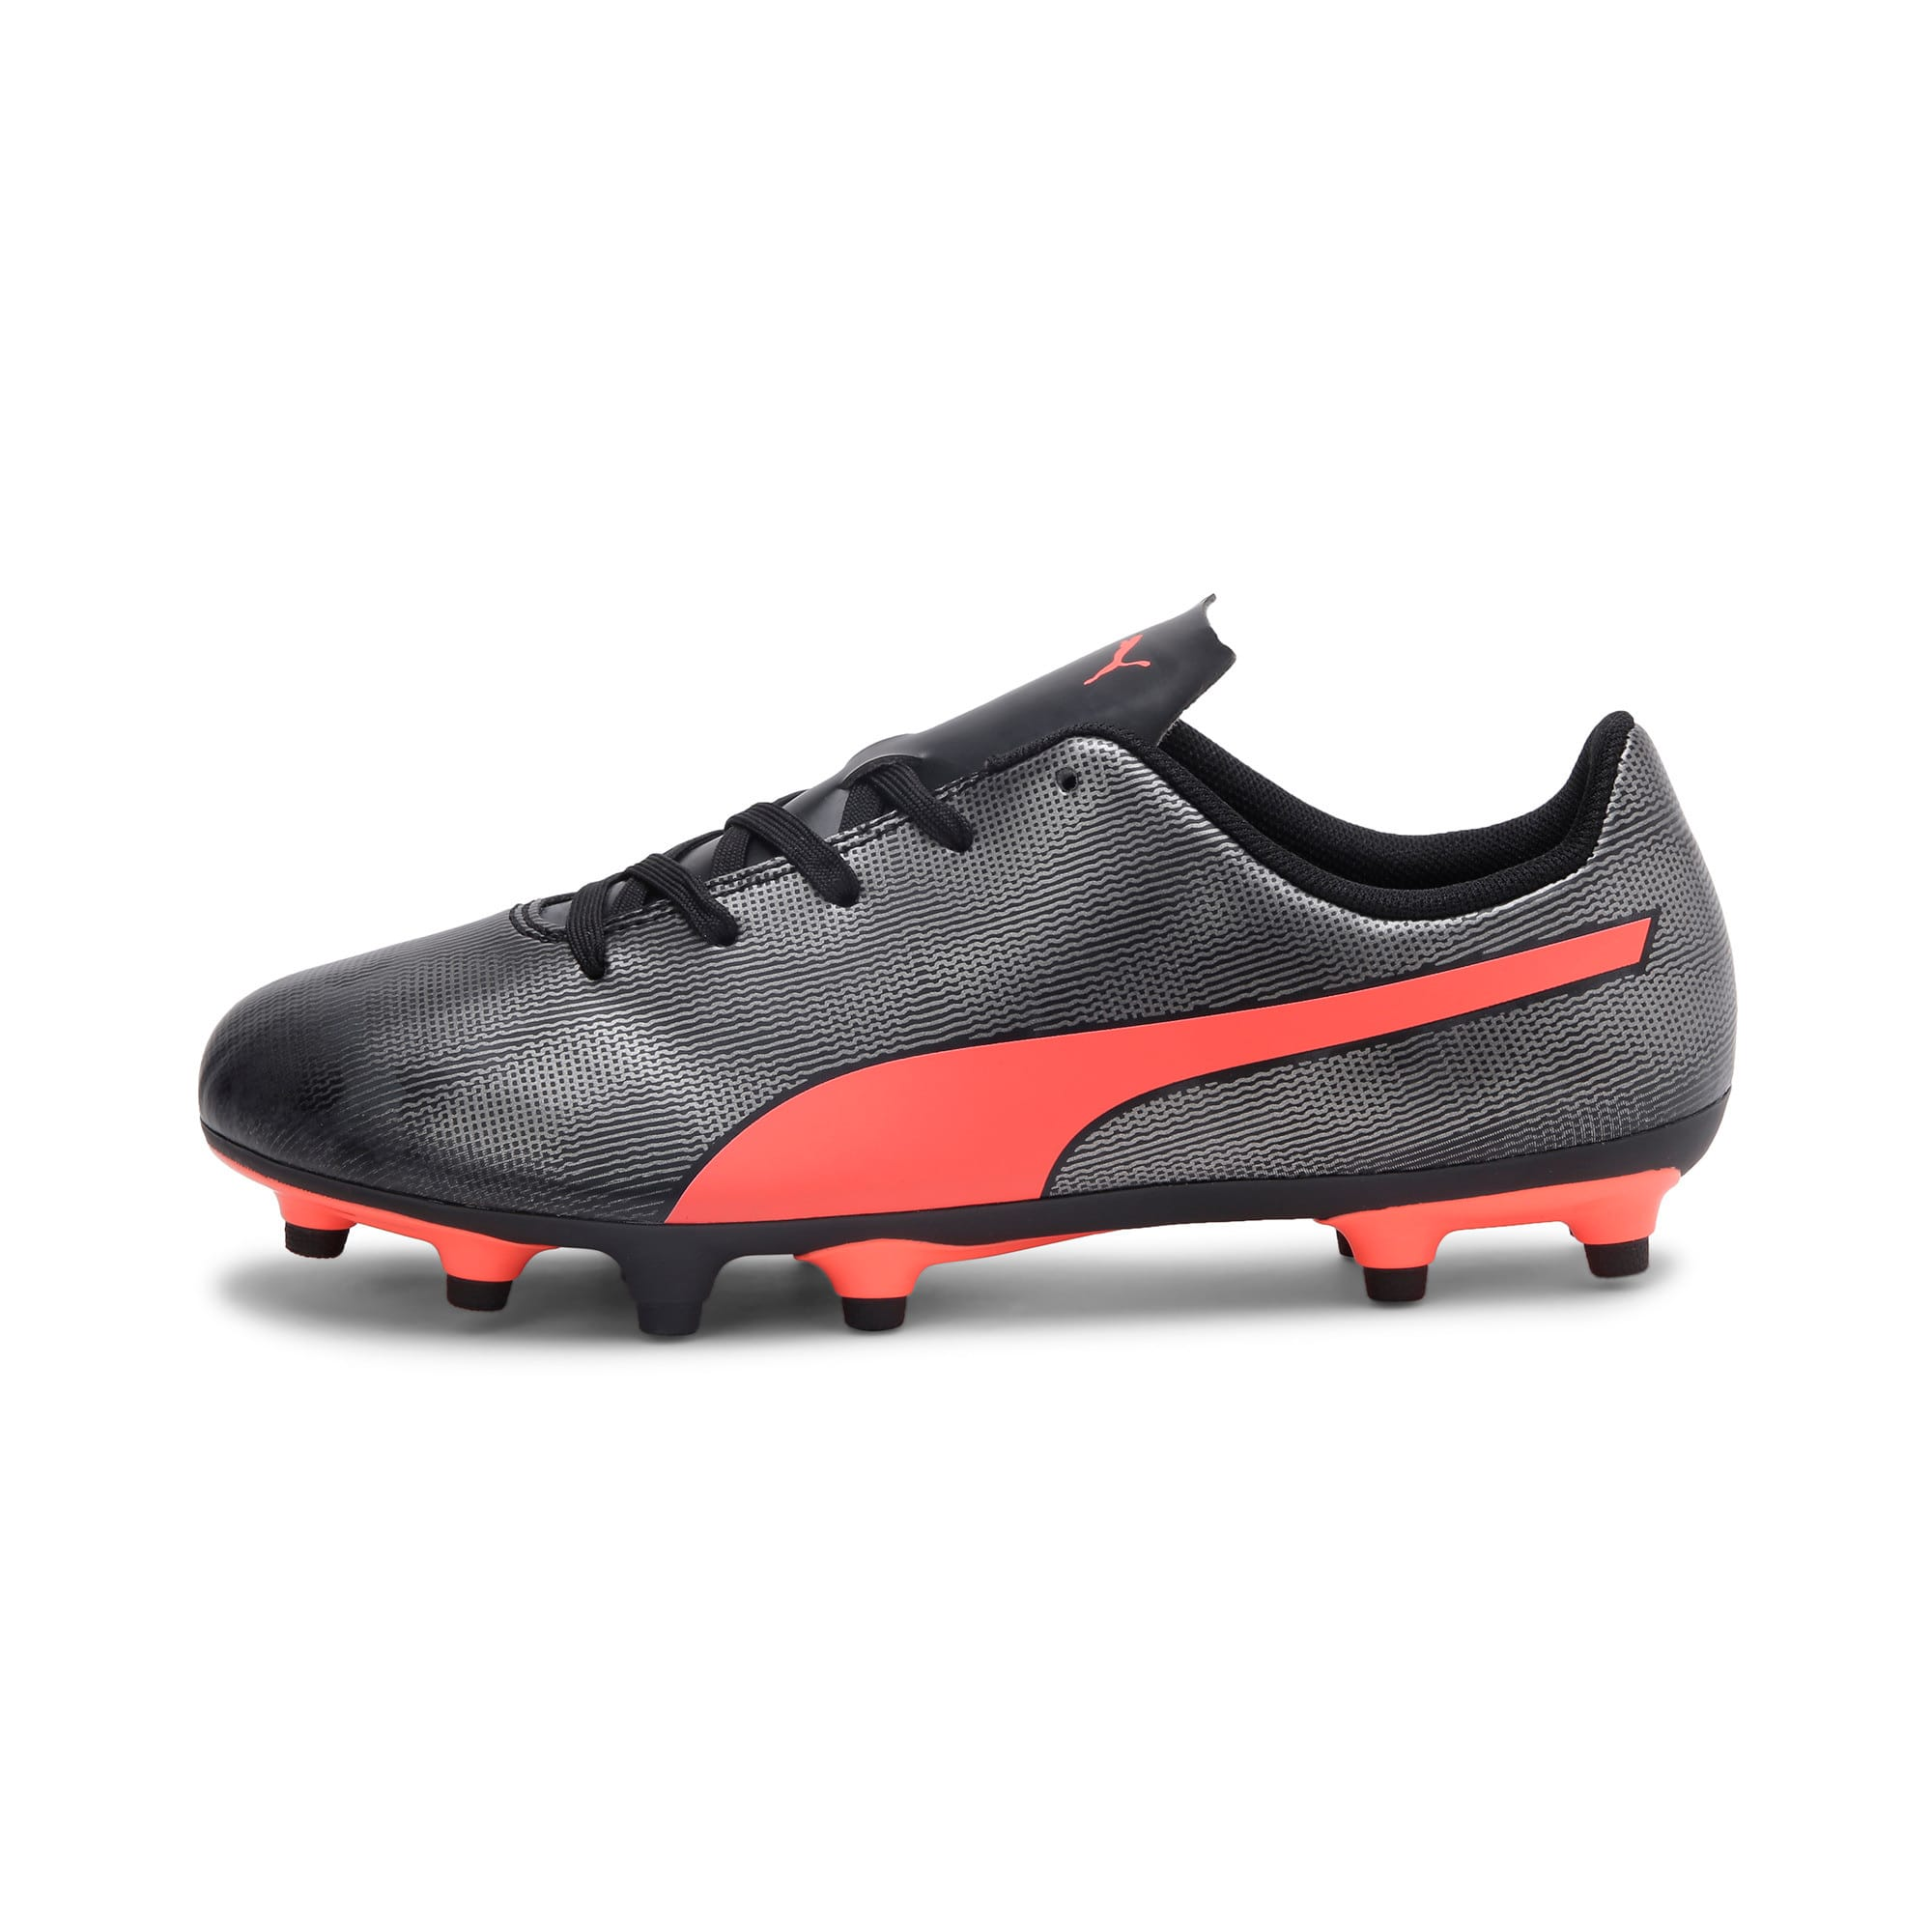 Thumbnail 1 of Rapido FG Youth Football Boots, Black-Nrgy Red-Aged Silver, medium-IND